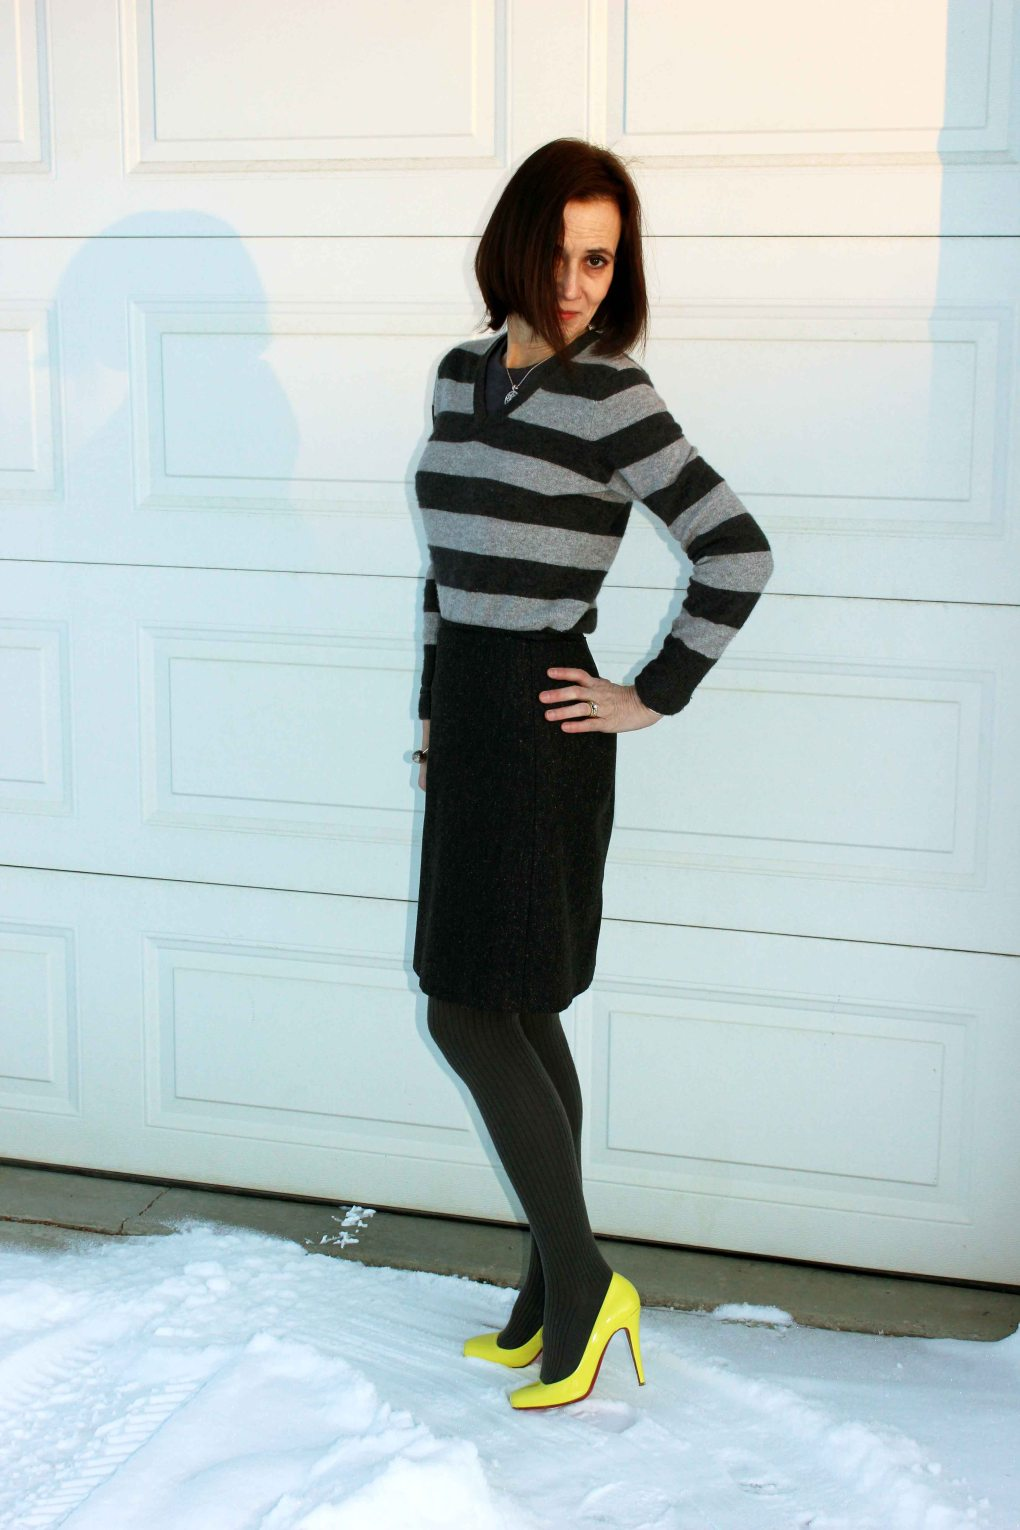 over 50 style woman wearing a tweed skirt with pop of color